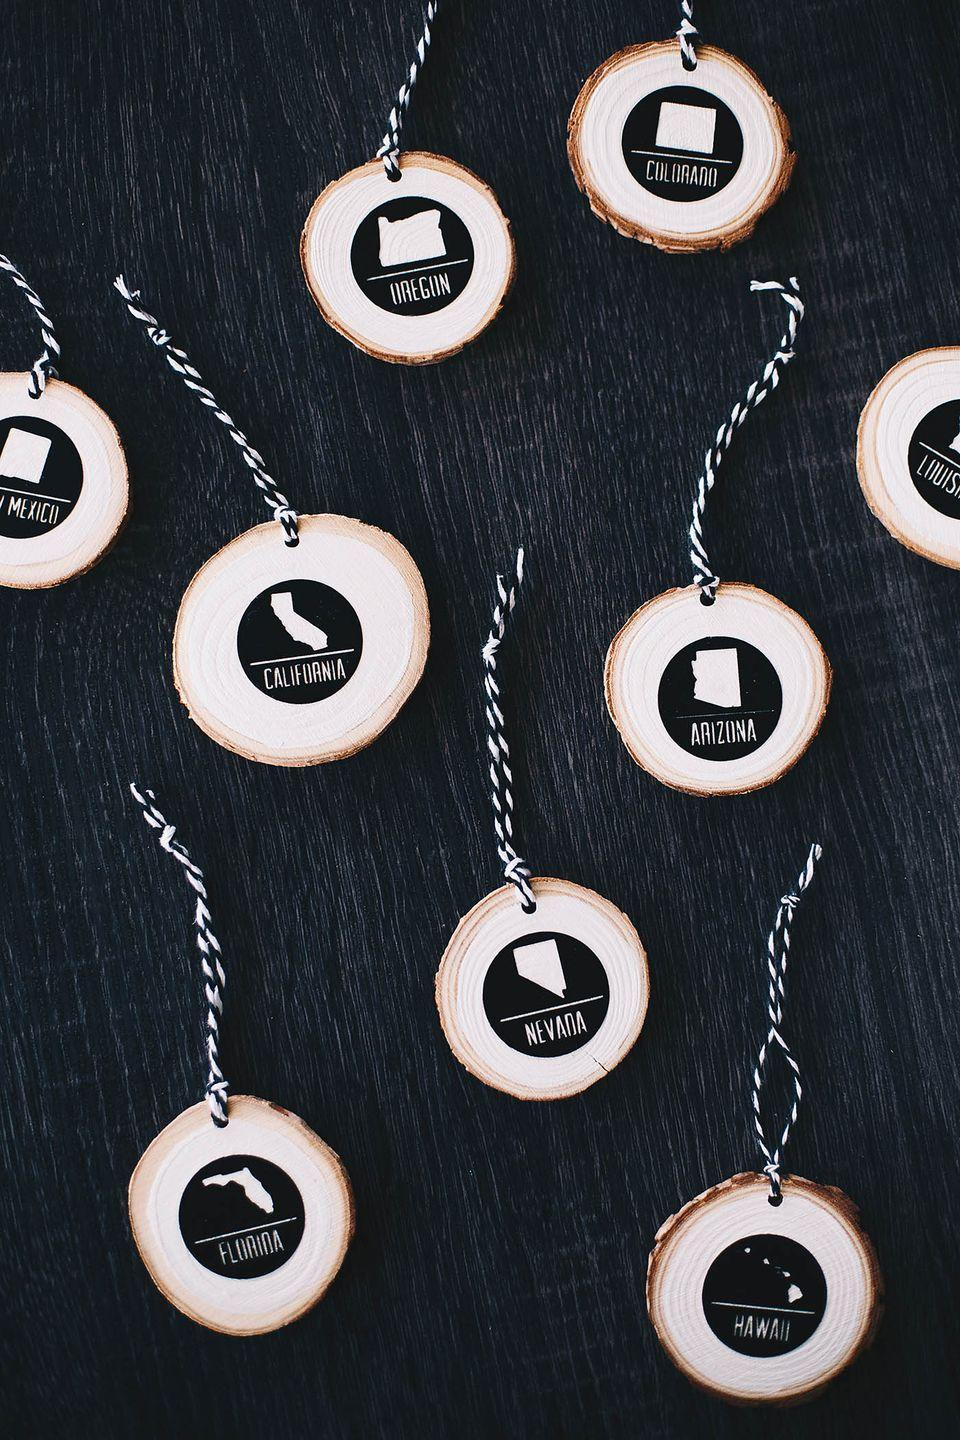 """<p>Celebrate your family's travels with these ornaments that have painted state decals on each wood slice. We think these also make the perfect gift for friends or family who travel often—and it doesn't have to be limited to states!</p><p><strong>Get the tutorial at <a href=""""https://allforthememories.com/sponsored-easing-in-to-the-holiday-decor-diy-modern-travel-ornament/"""" rel=""""nofollow noopener"""" target=""""_blank"""" data-ylk=""""slk:All for the Memories"""" class=""""link rapid-noclick-resp"""">All for the Memories</a>.</strong></p><p><strong><a class=""""link rapid-noclick-resp"""" href=""""https://www.amazon.com/Fuyit-Unfinished-Predrilled-Christmas-Ornaments/dp/B078HB4ZD7/ref=sr_1_4?tag=syn-yahoo-20&ascsubtag=%5Bartid%7C10050.g.1070%5Bsrc%7Cyahoo-us"""" rel=""""nofollow noopener"""" target=""""_blank"""" data-ylk=""""slk:SHOP WOOD SLICES"""">SHOP WOOD SLICES</a><br></strong></p>"""